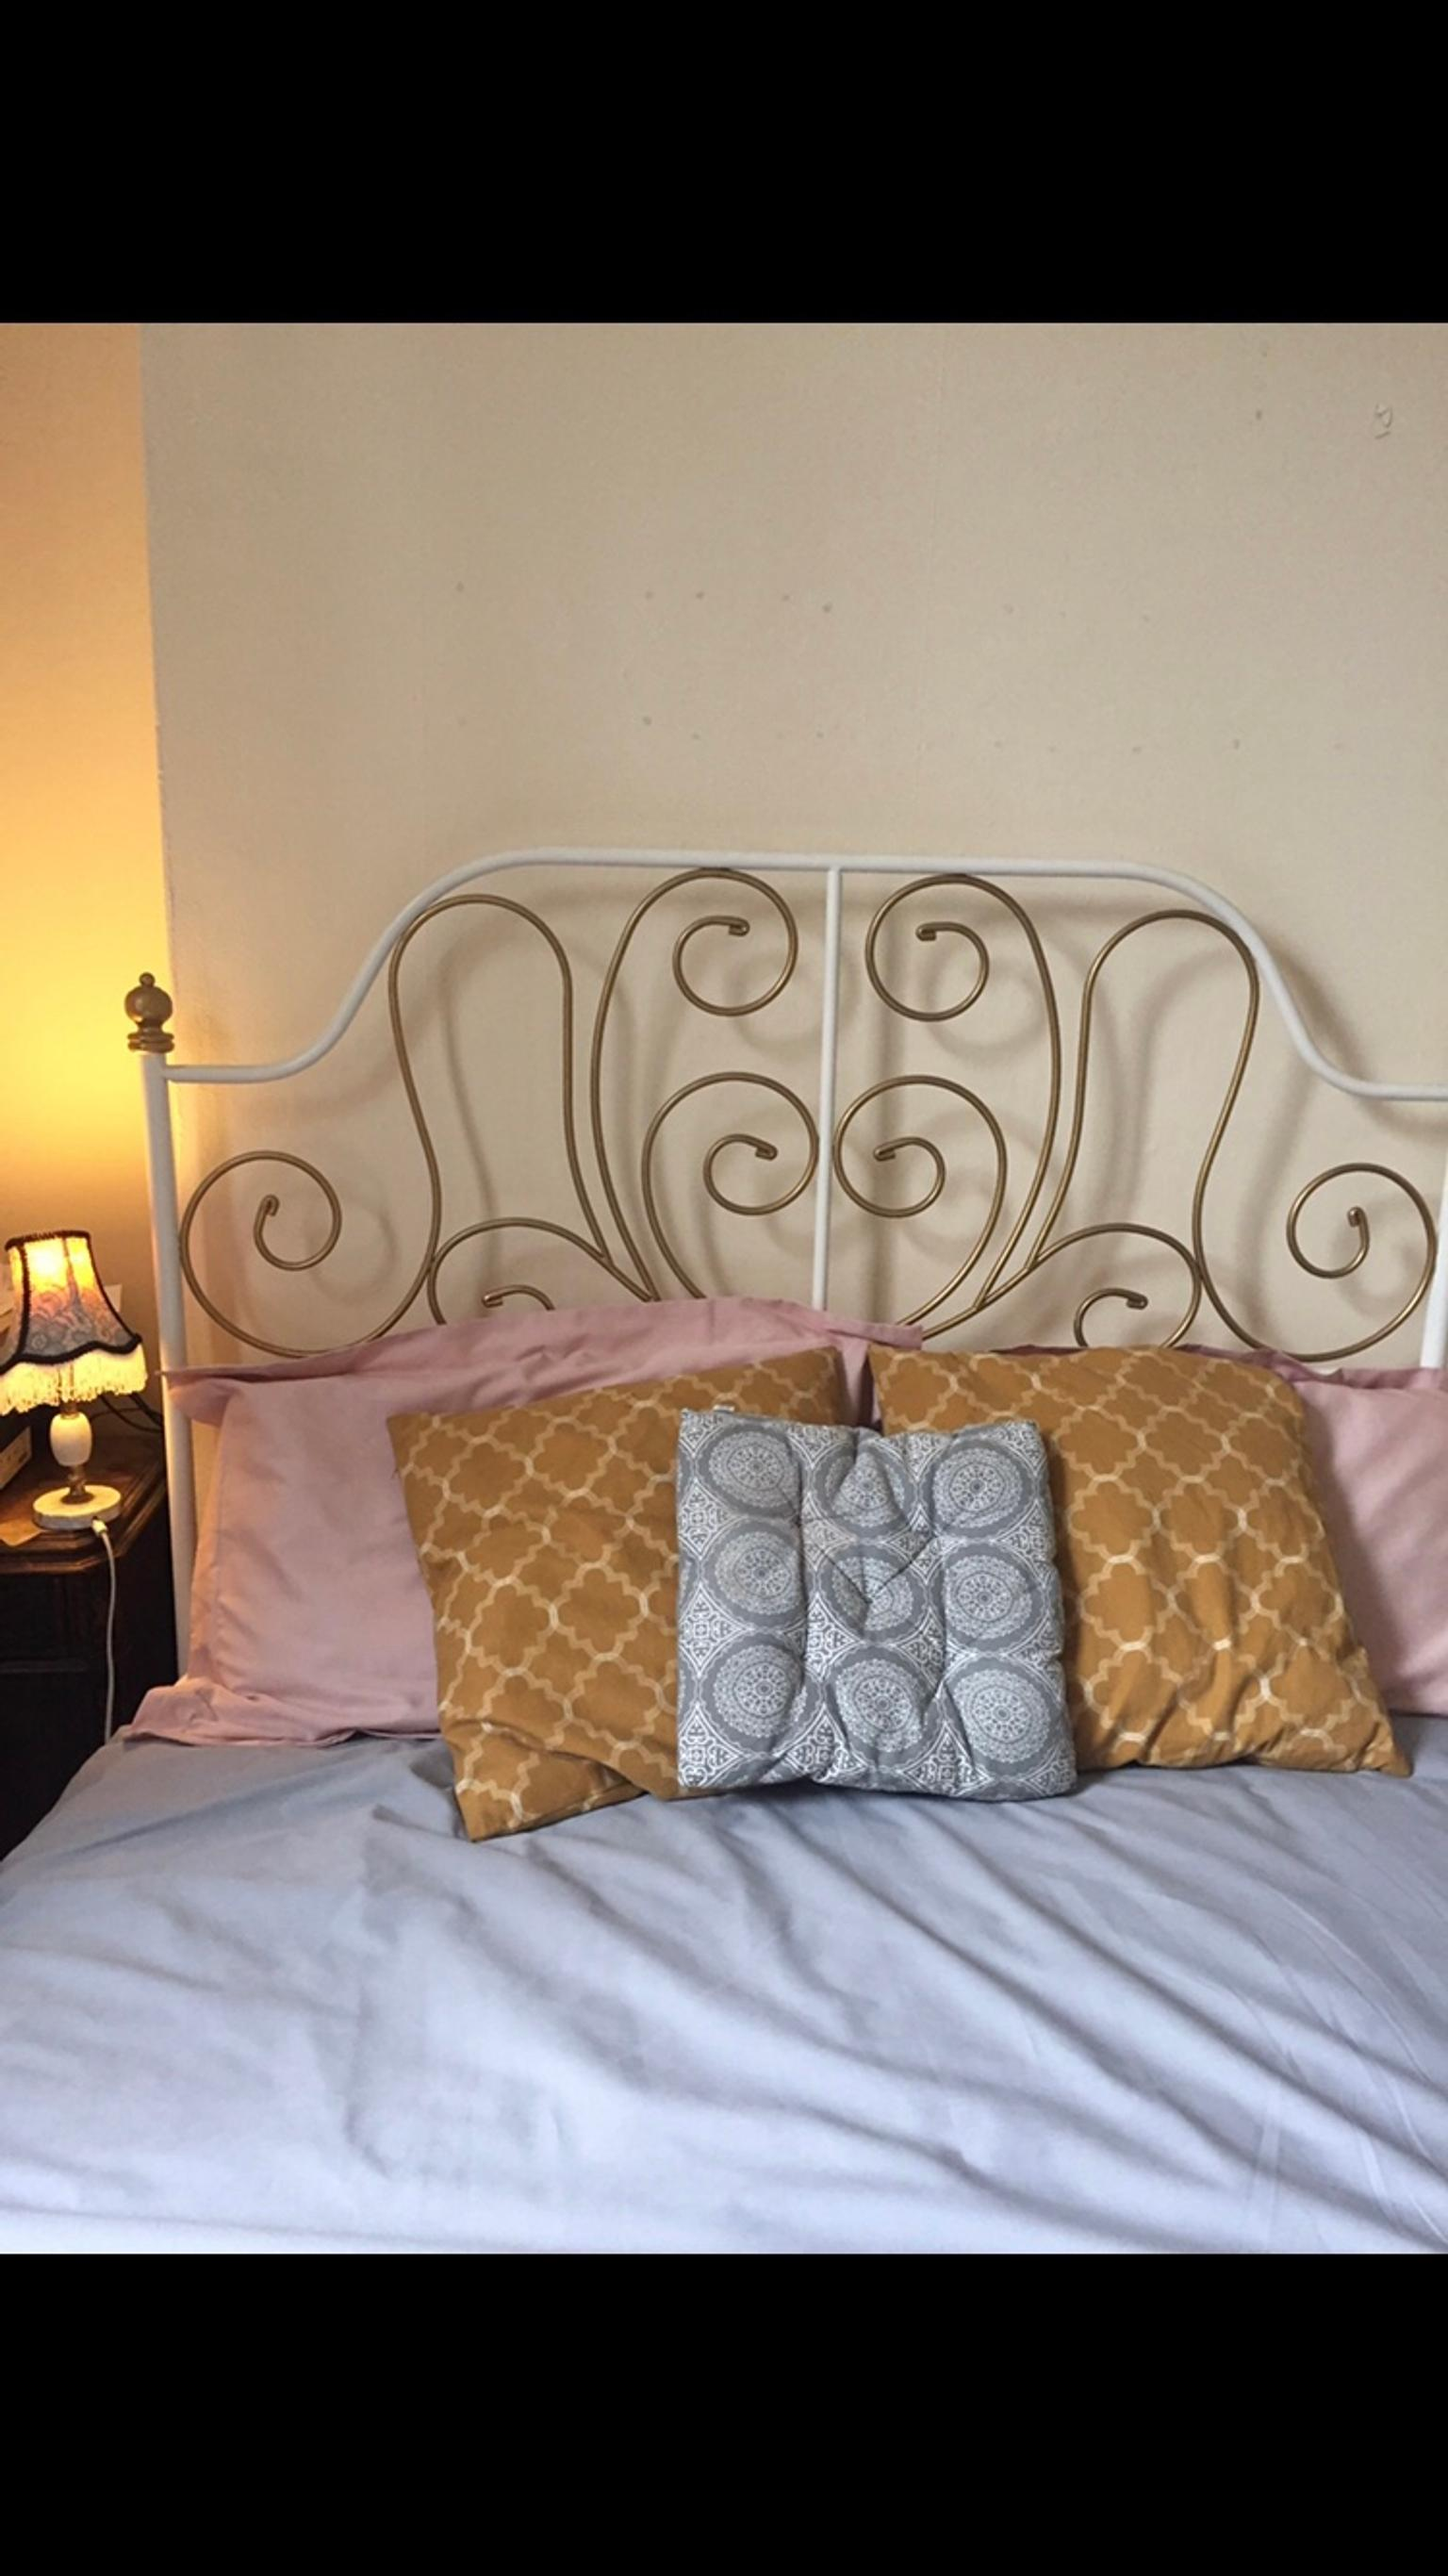 Ikea Leirvik Bed Frame With Gold Leaf Paint In Sw8 Lambeth For 20 00 For Sale Shpock